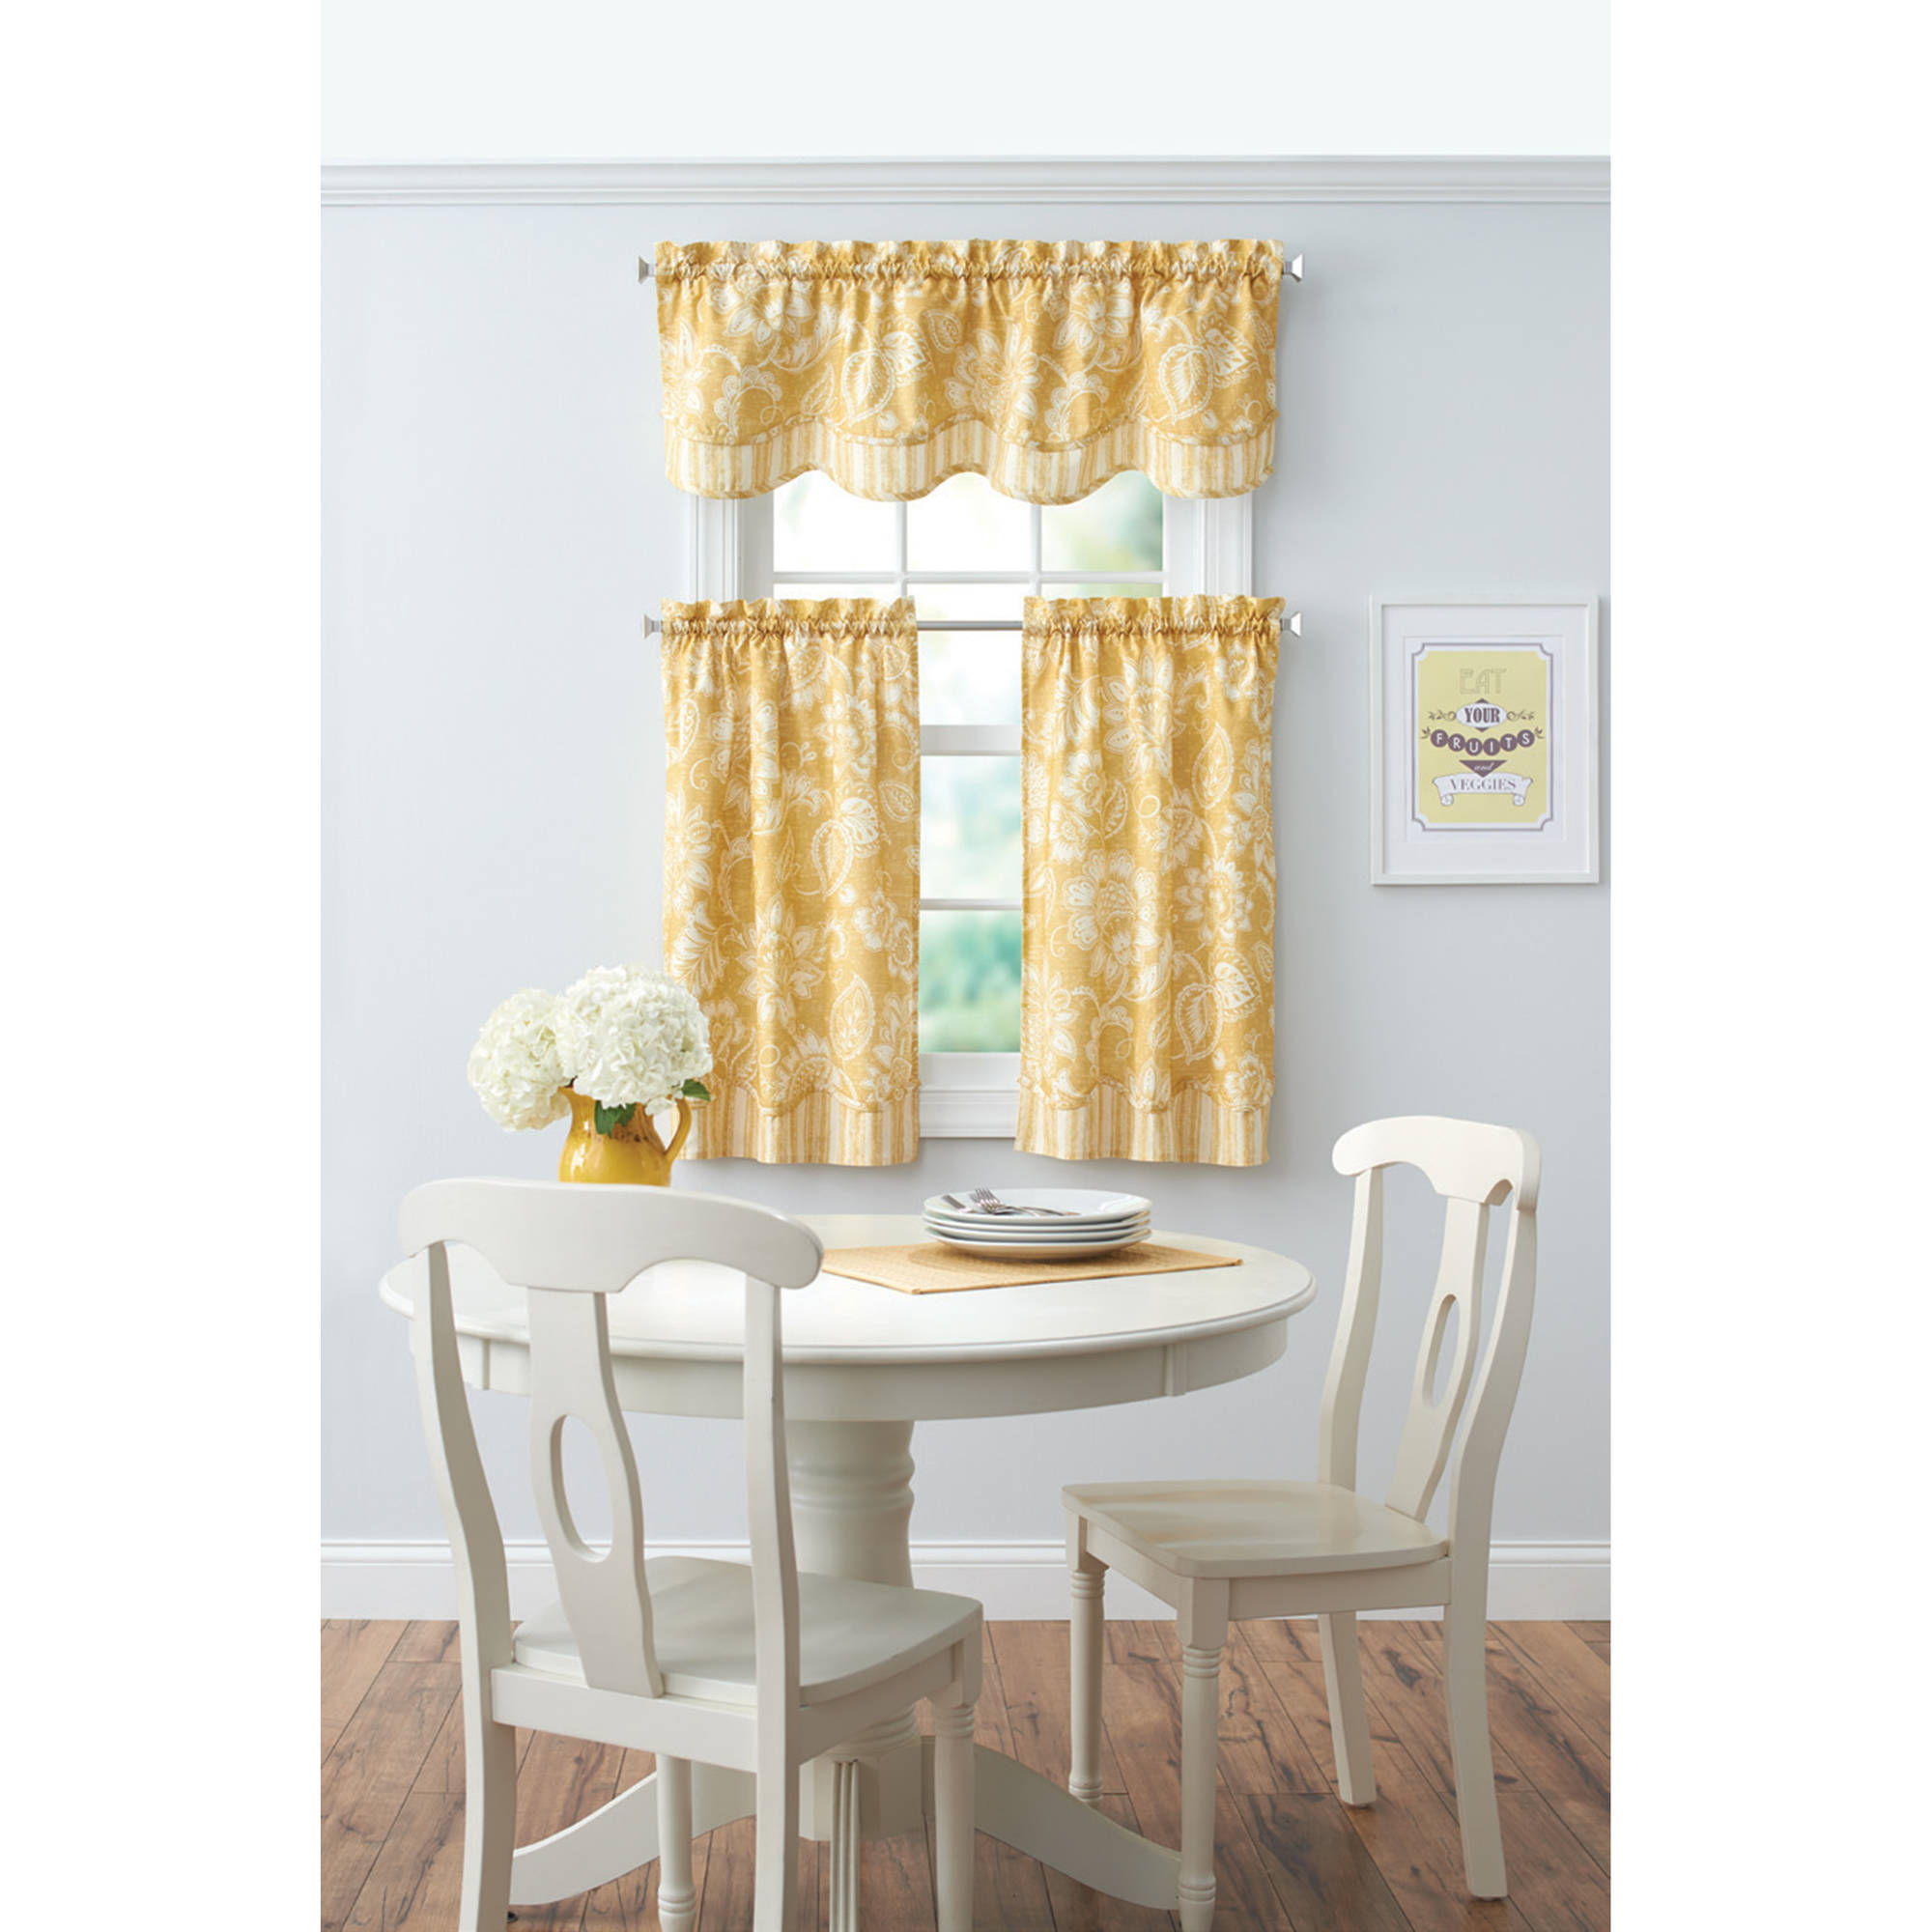 Better Homes and Gardens Botanical Garden Kitchen Tiers or Valance by Richloom Home fashions